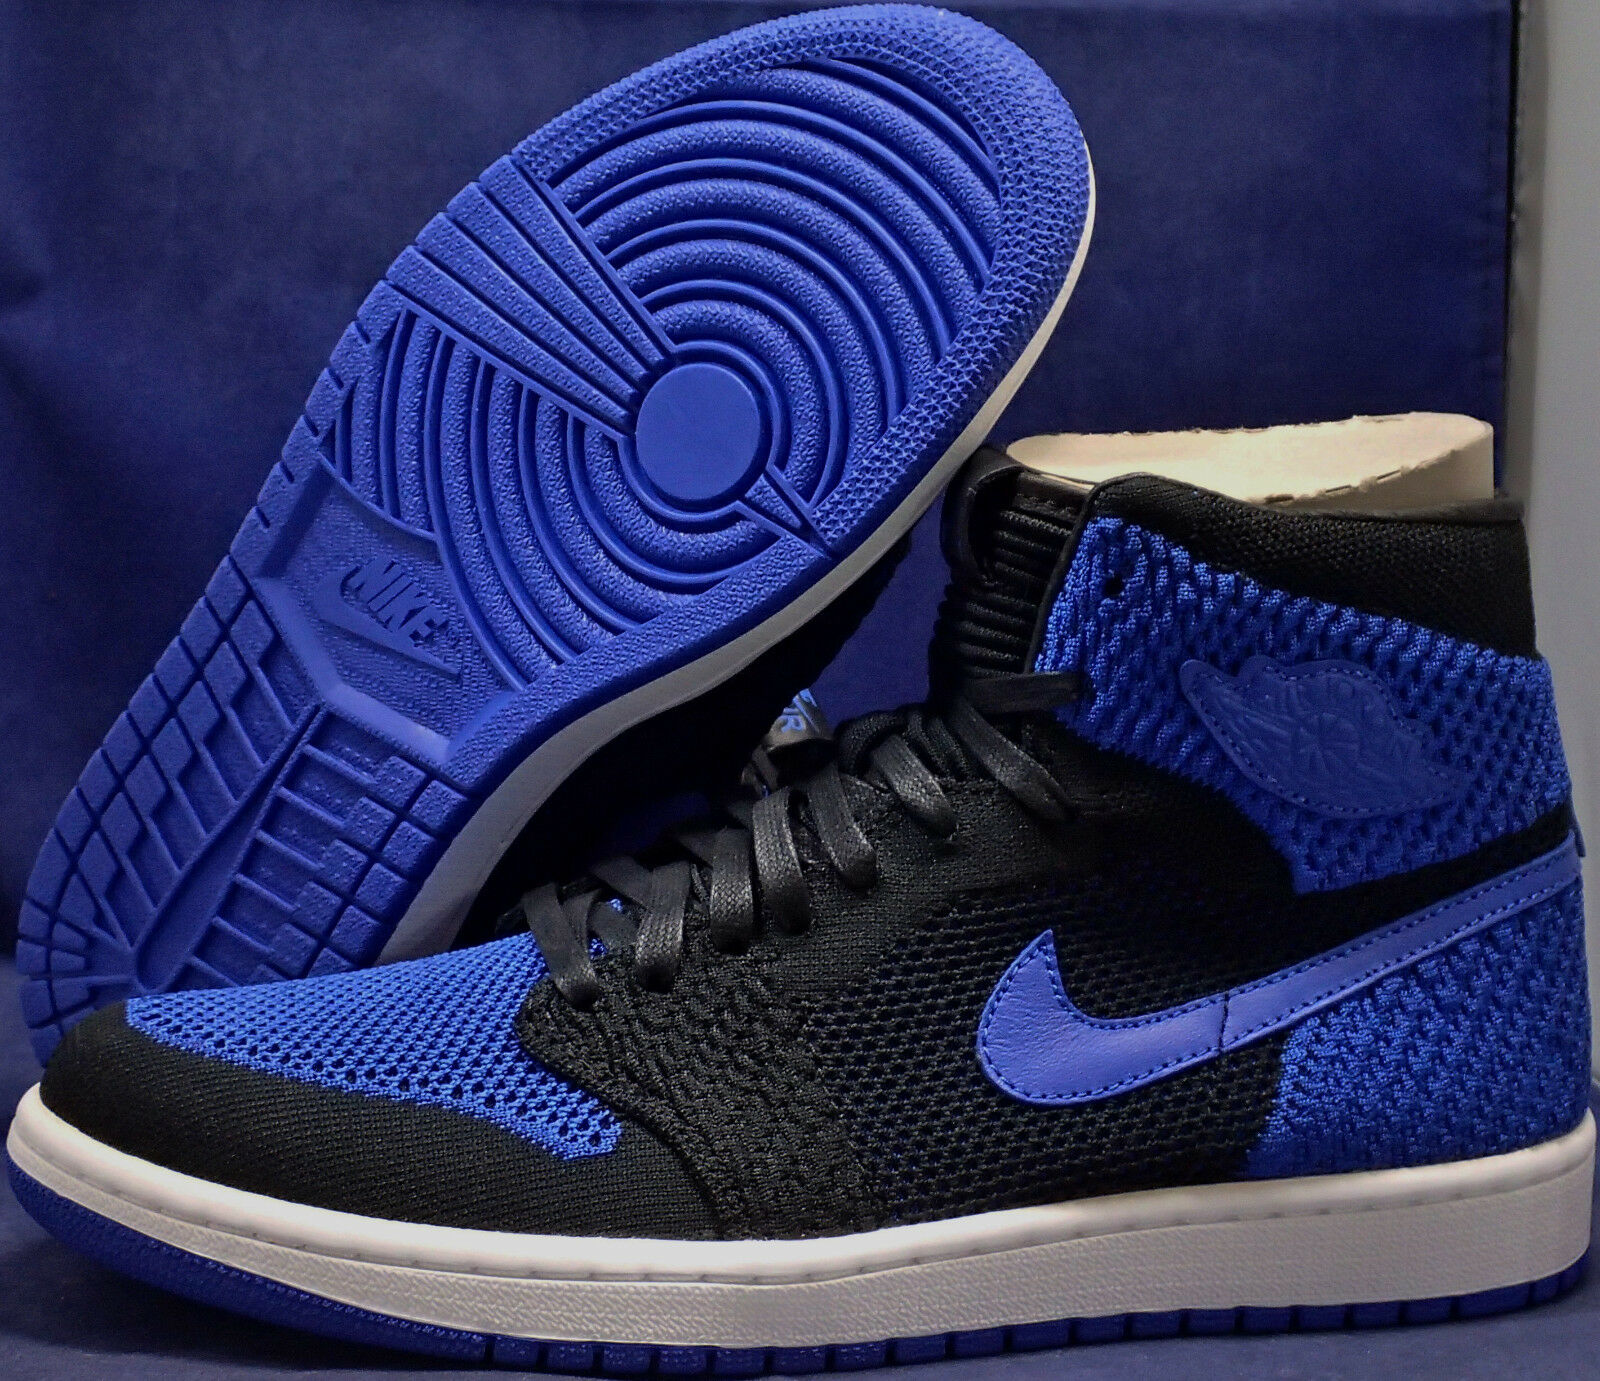 brand new 3dc37 4c6ba Nike Air Jordan 1 Retro Hi Flyknit Black Game Royal Royal Royal High SZ 9.5  (